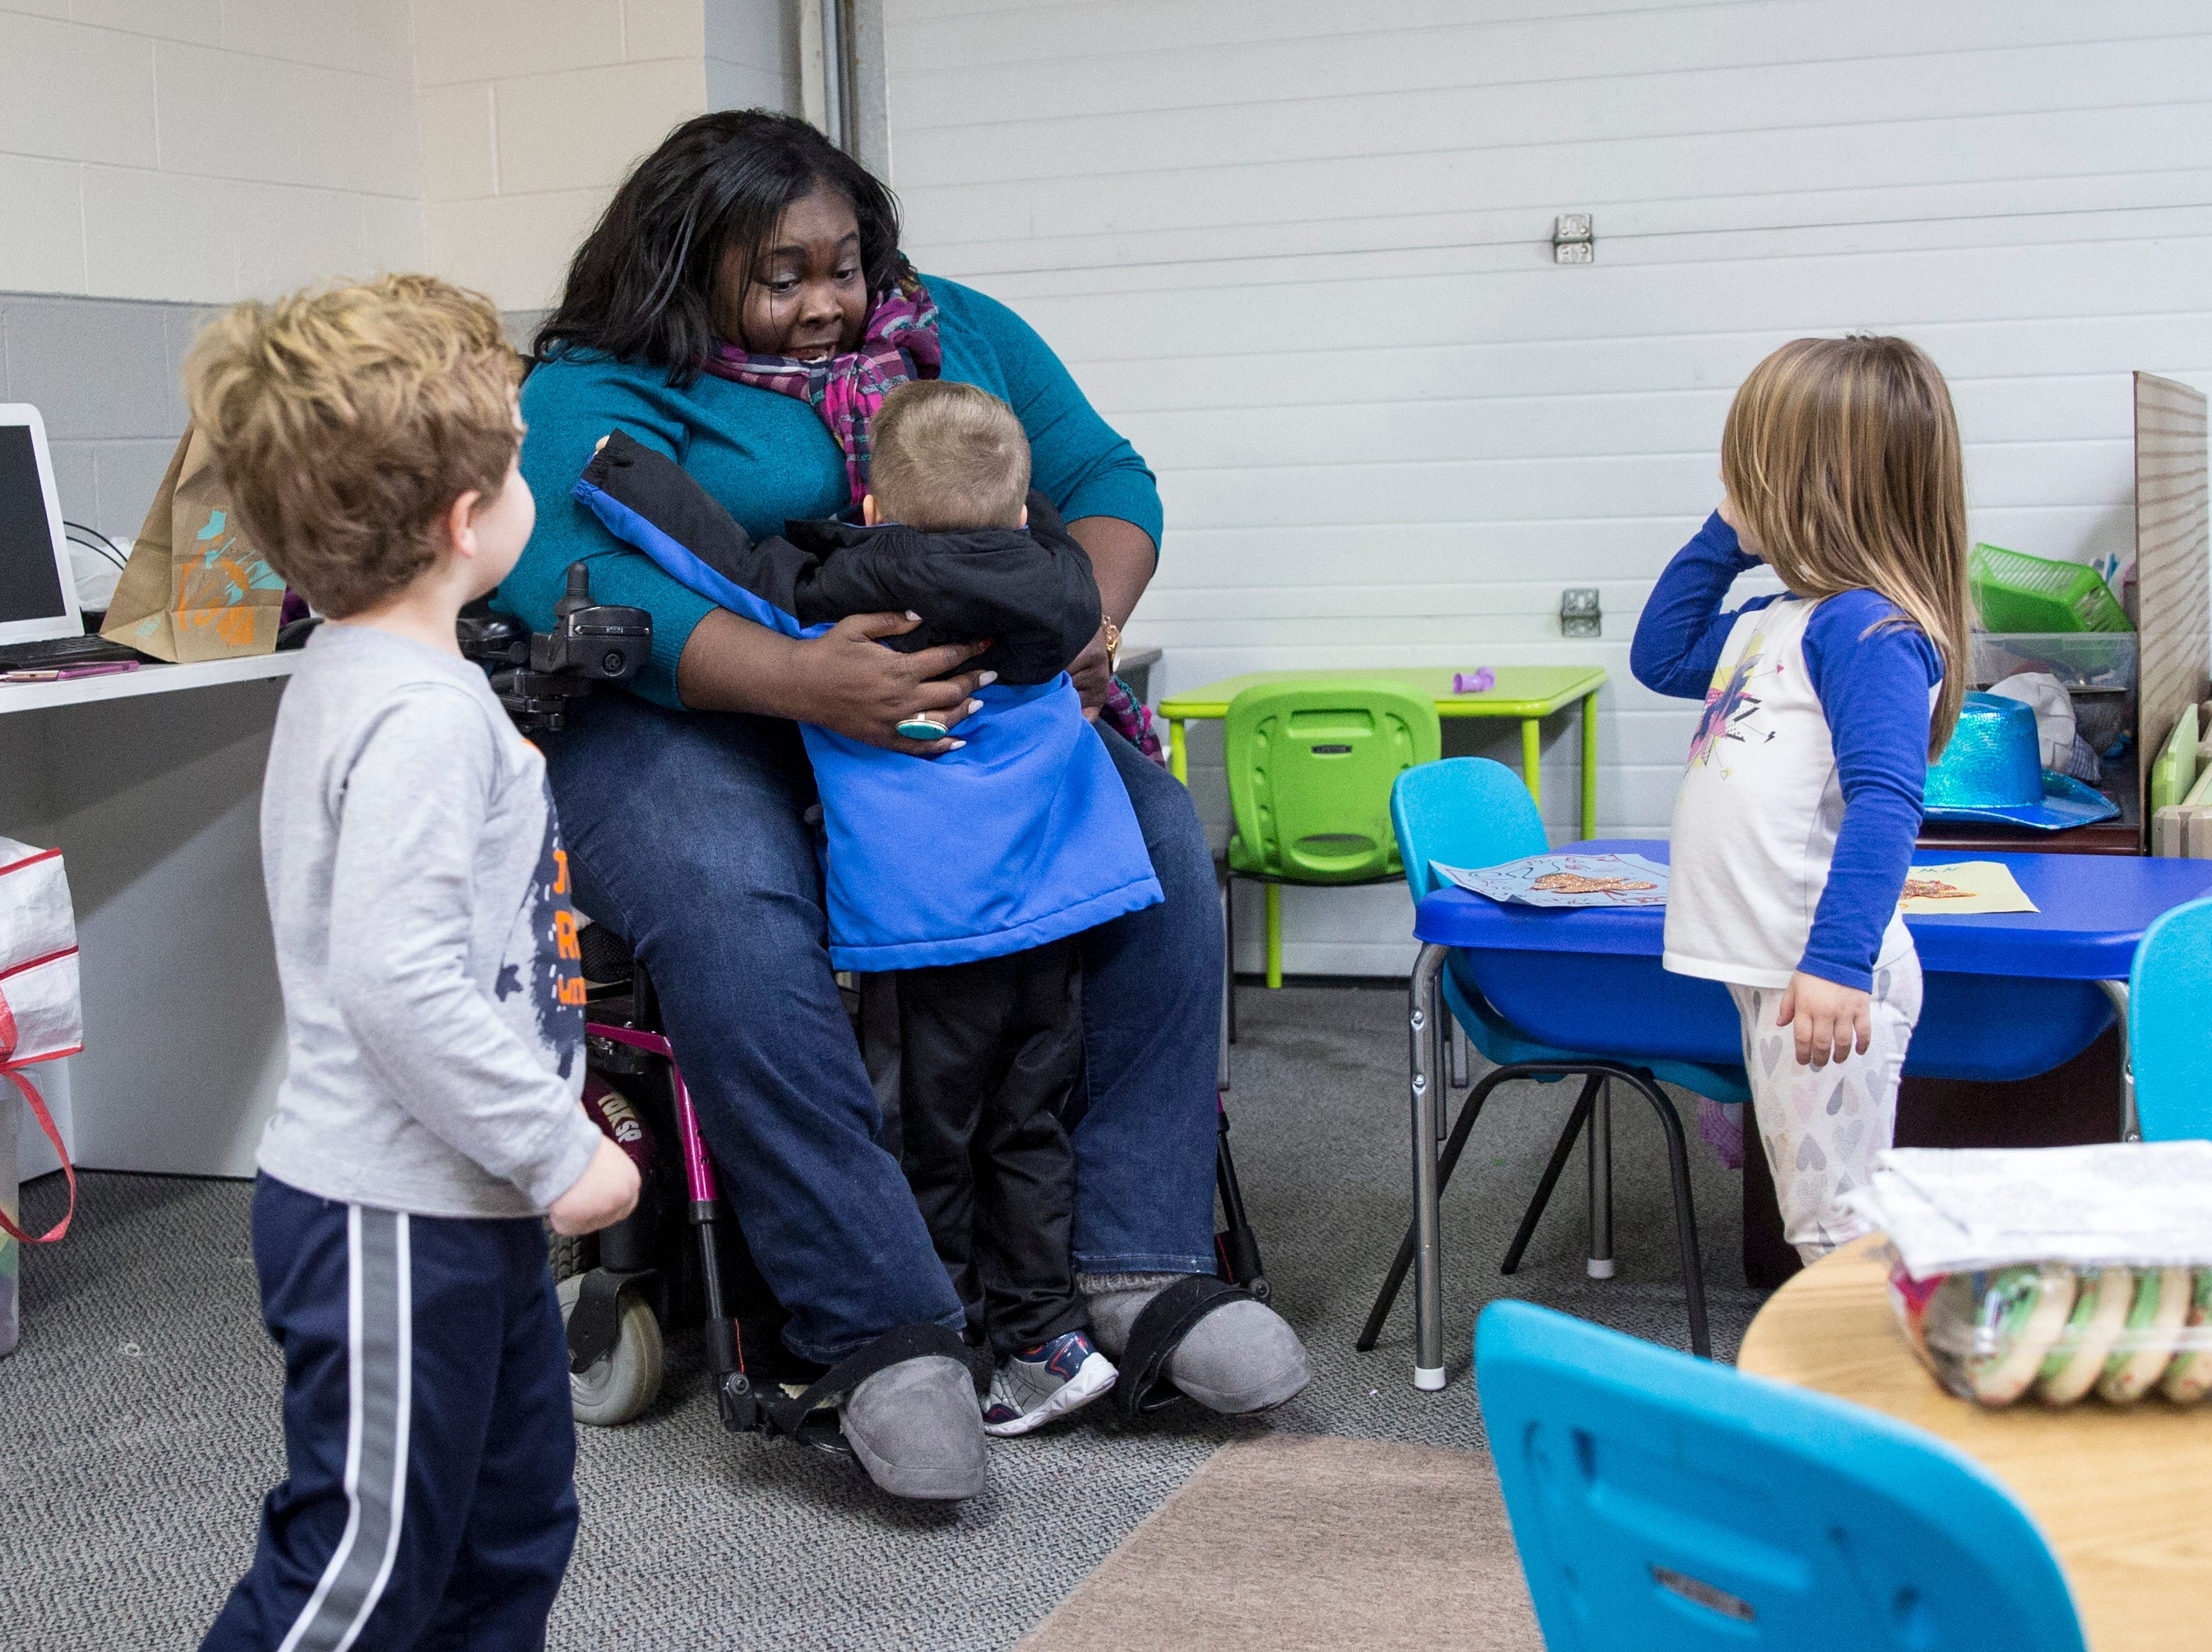 Allison Washington-Lacey works with children at Oak Park Early Learning. Washington-Lacey was diagnosed with multiple sclerosis after leaving for college and becoming severely ill.